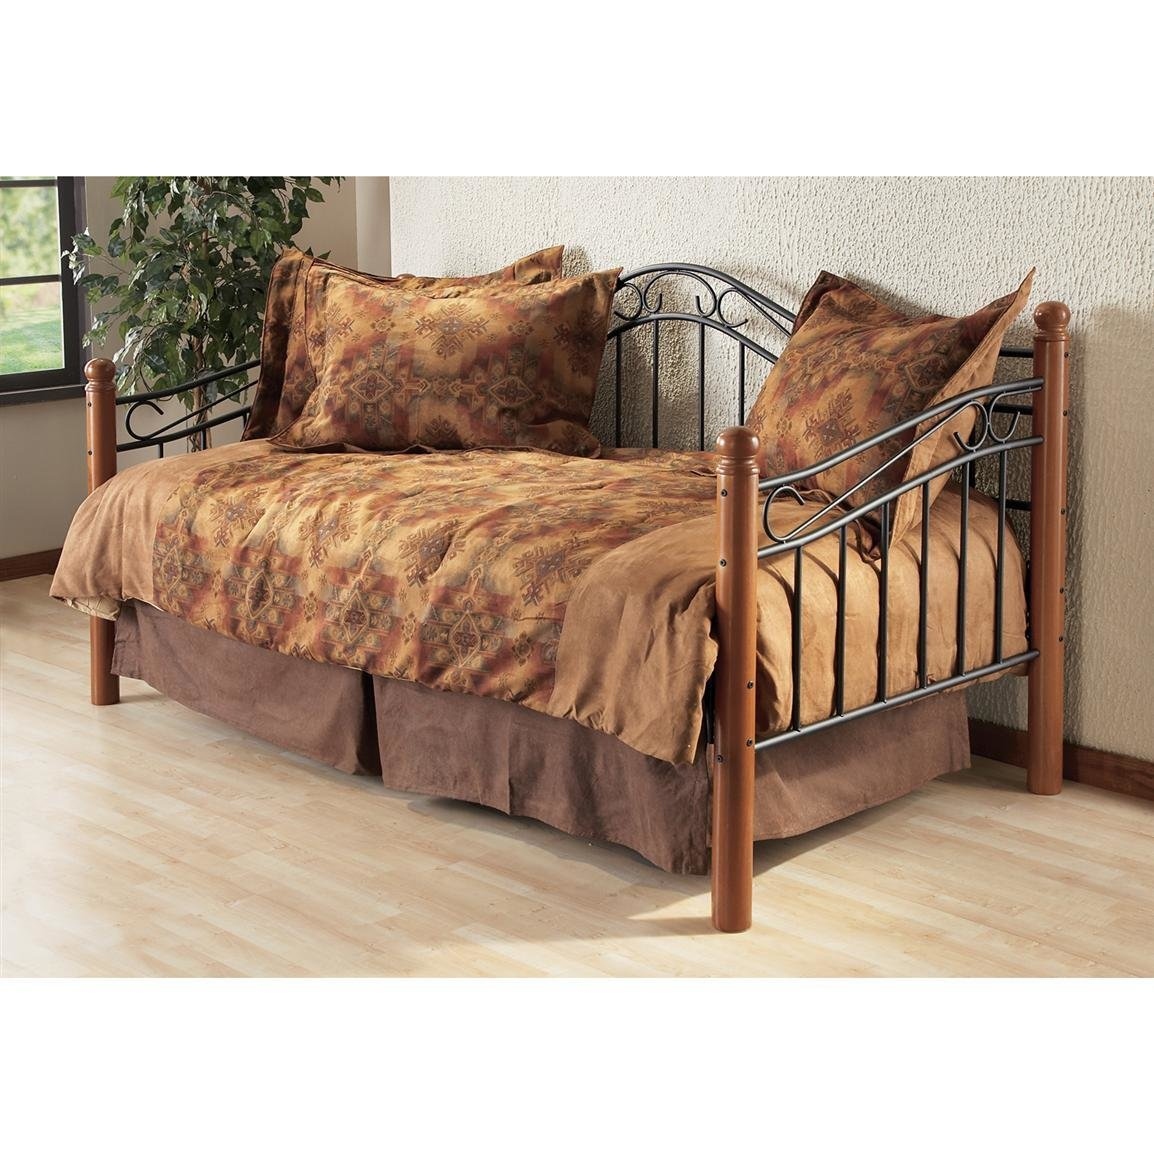 Best Hillsdale Furniture Winsloh Daybed With Trundle 117703 With Pictures